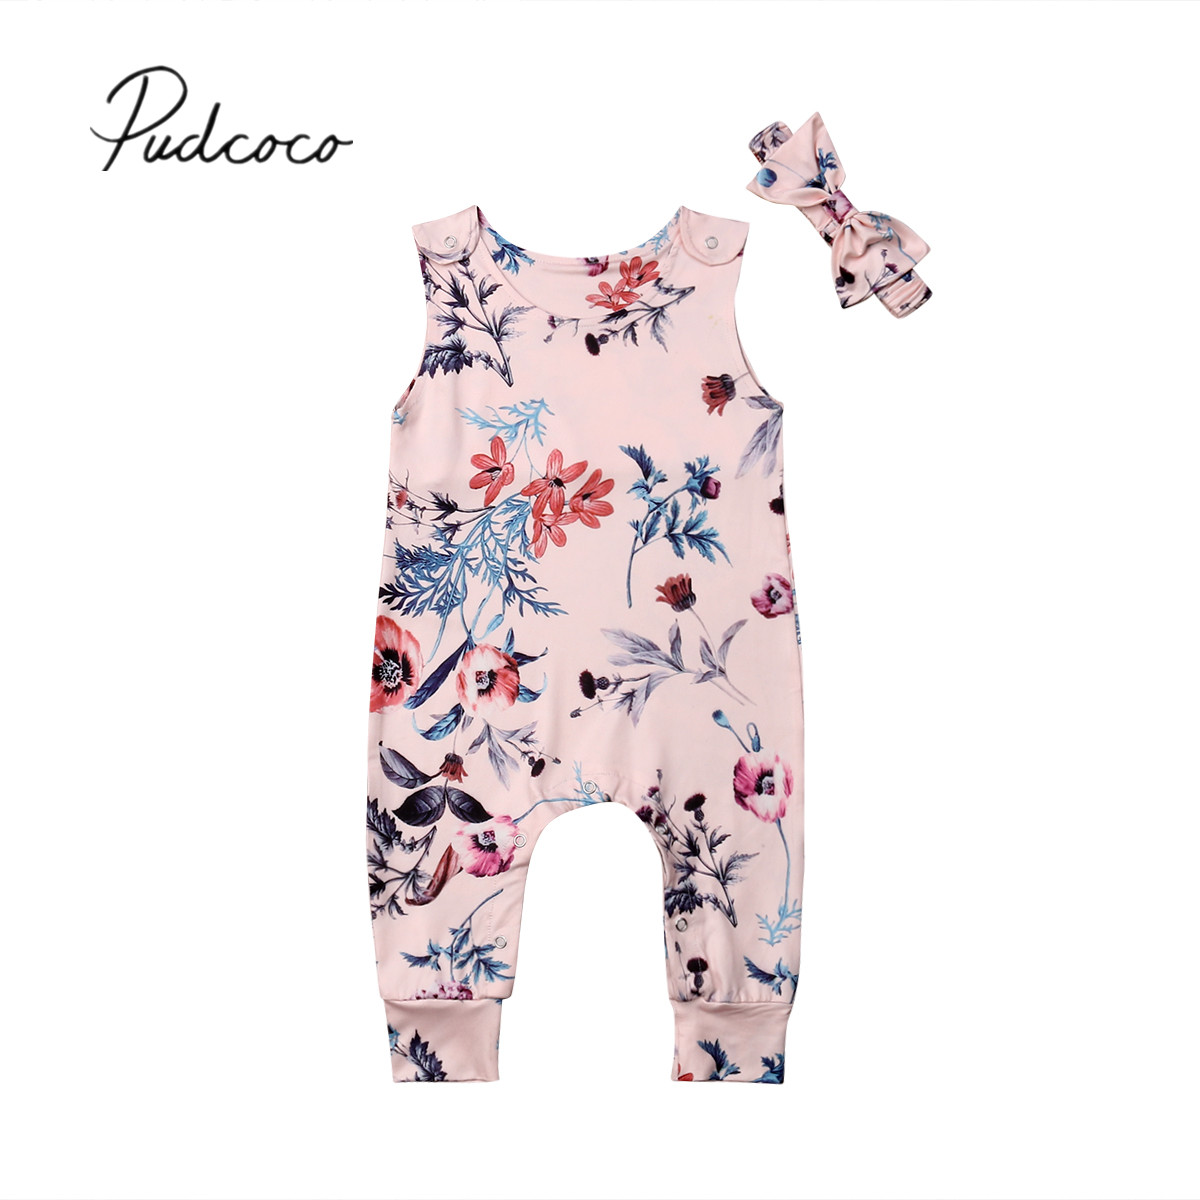 Summer Newborn Toddler Kids Baby Girls Floral Romper Sleeveless Backless Halter Jumpsuit